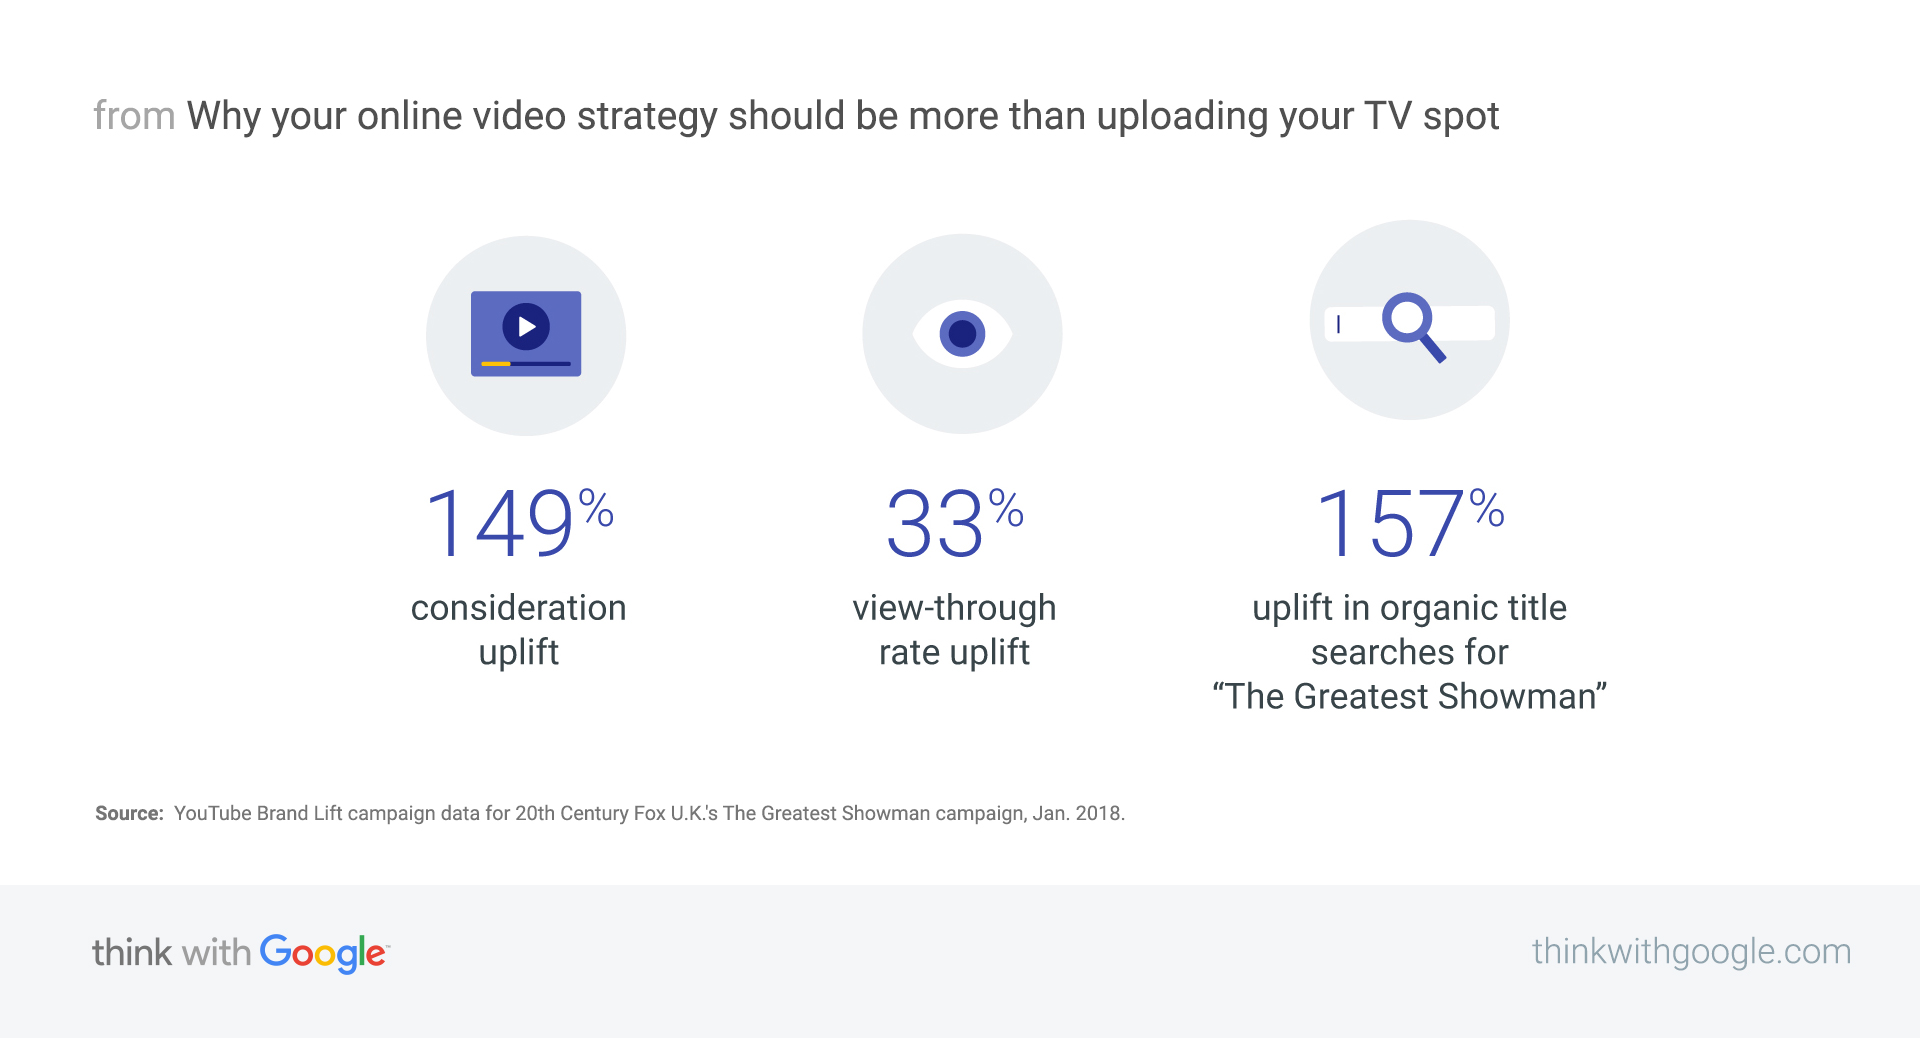 20th Century Fox's digital video advertising strategy - Think with